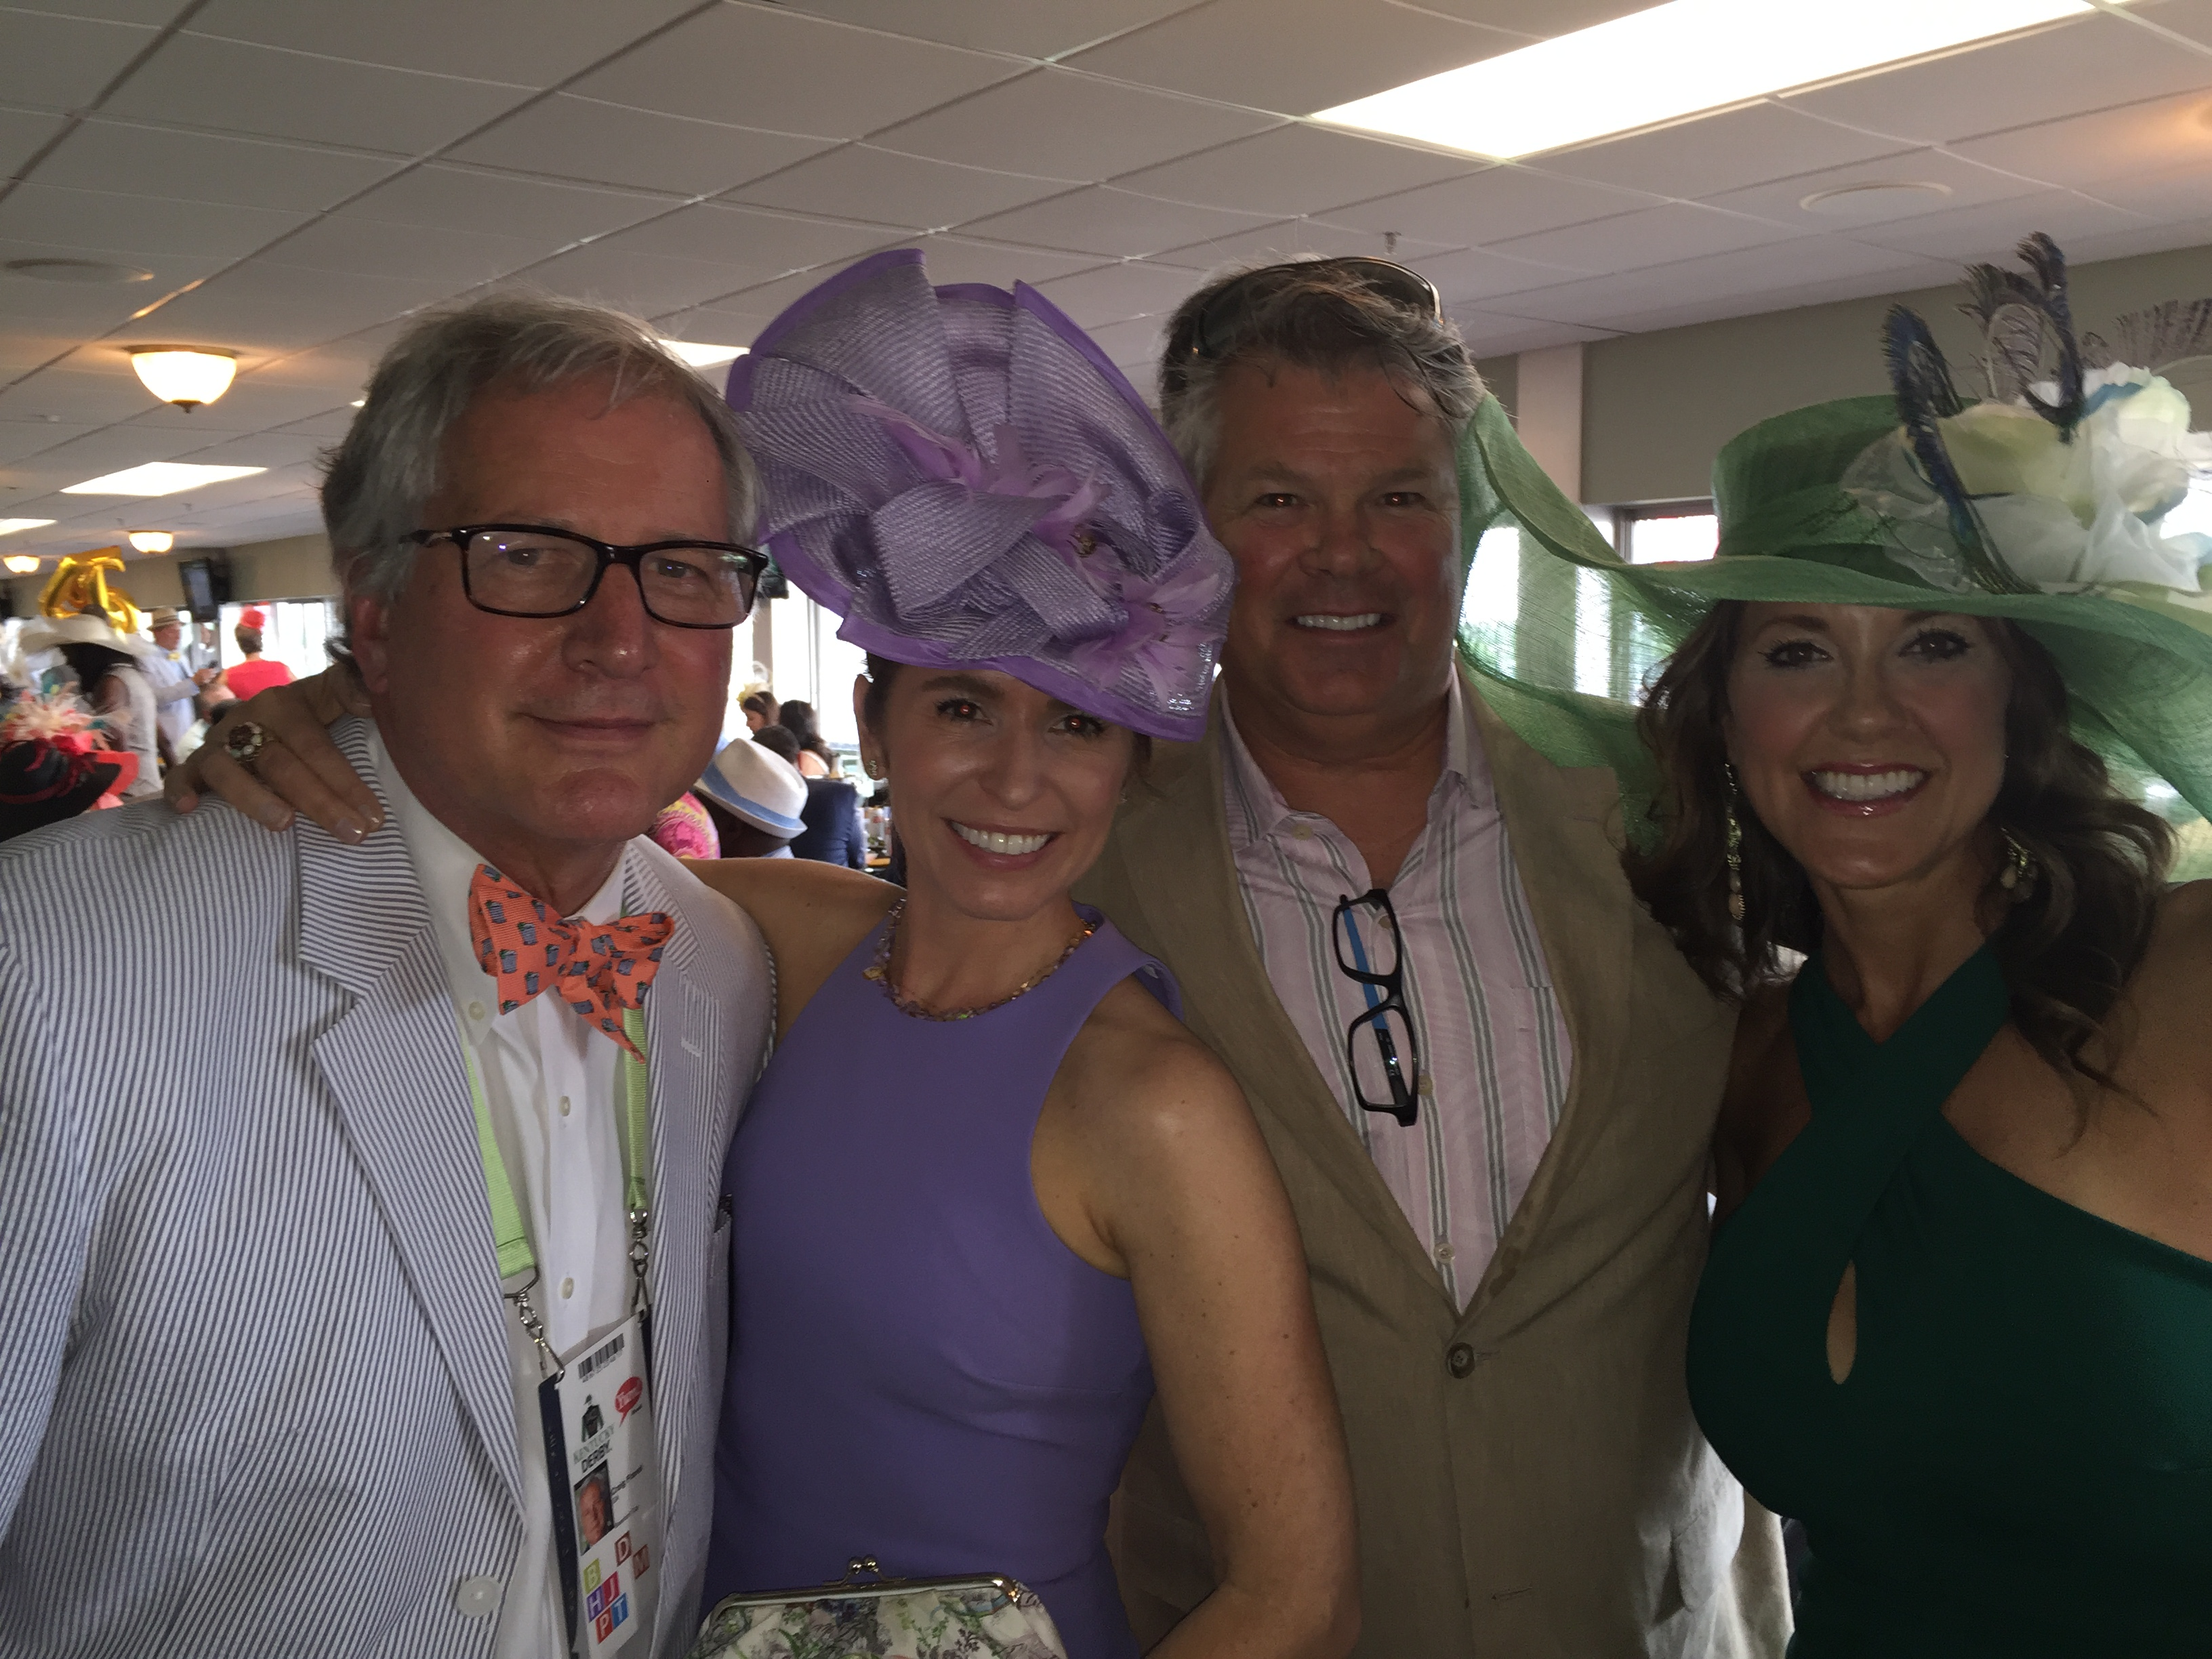 Kentucky Derby 2016